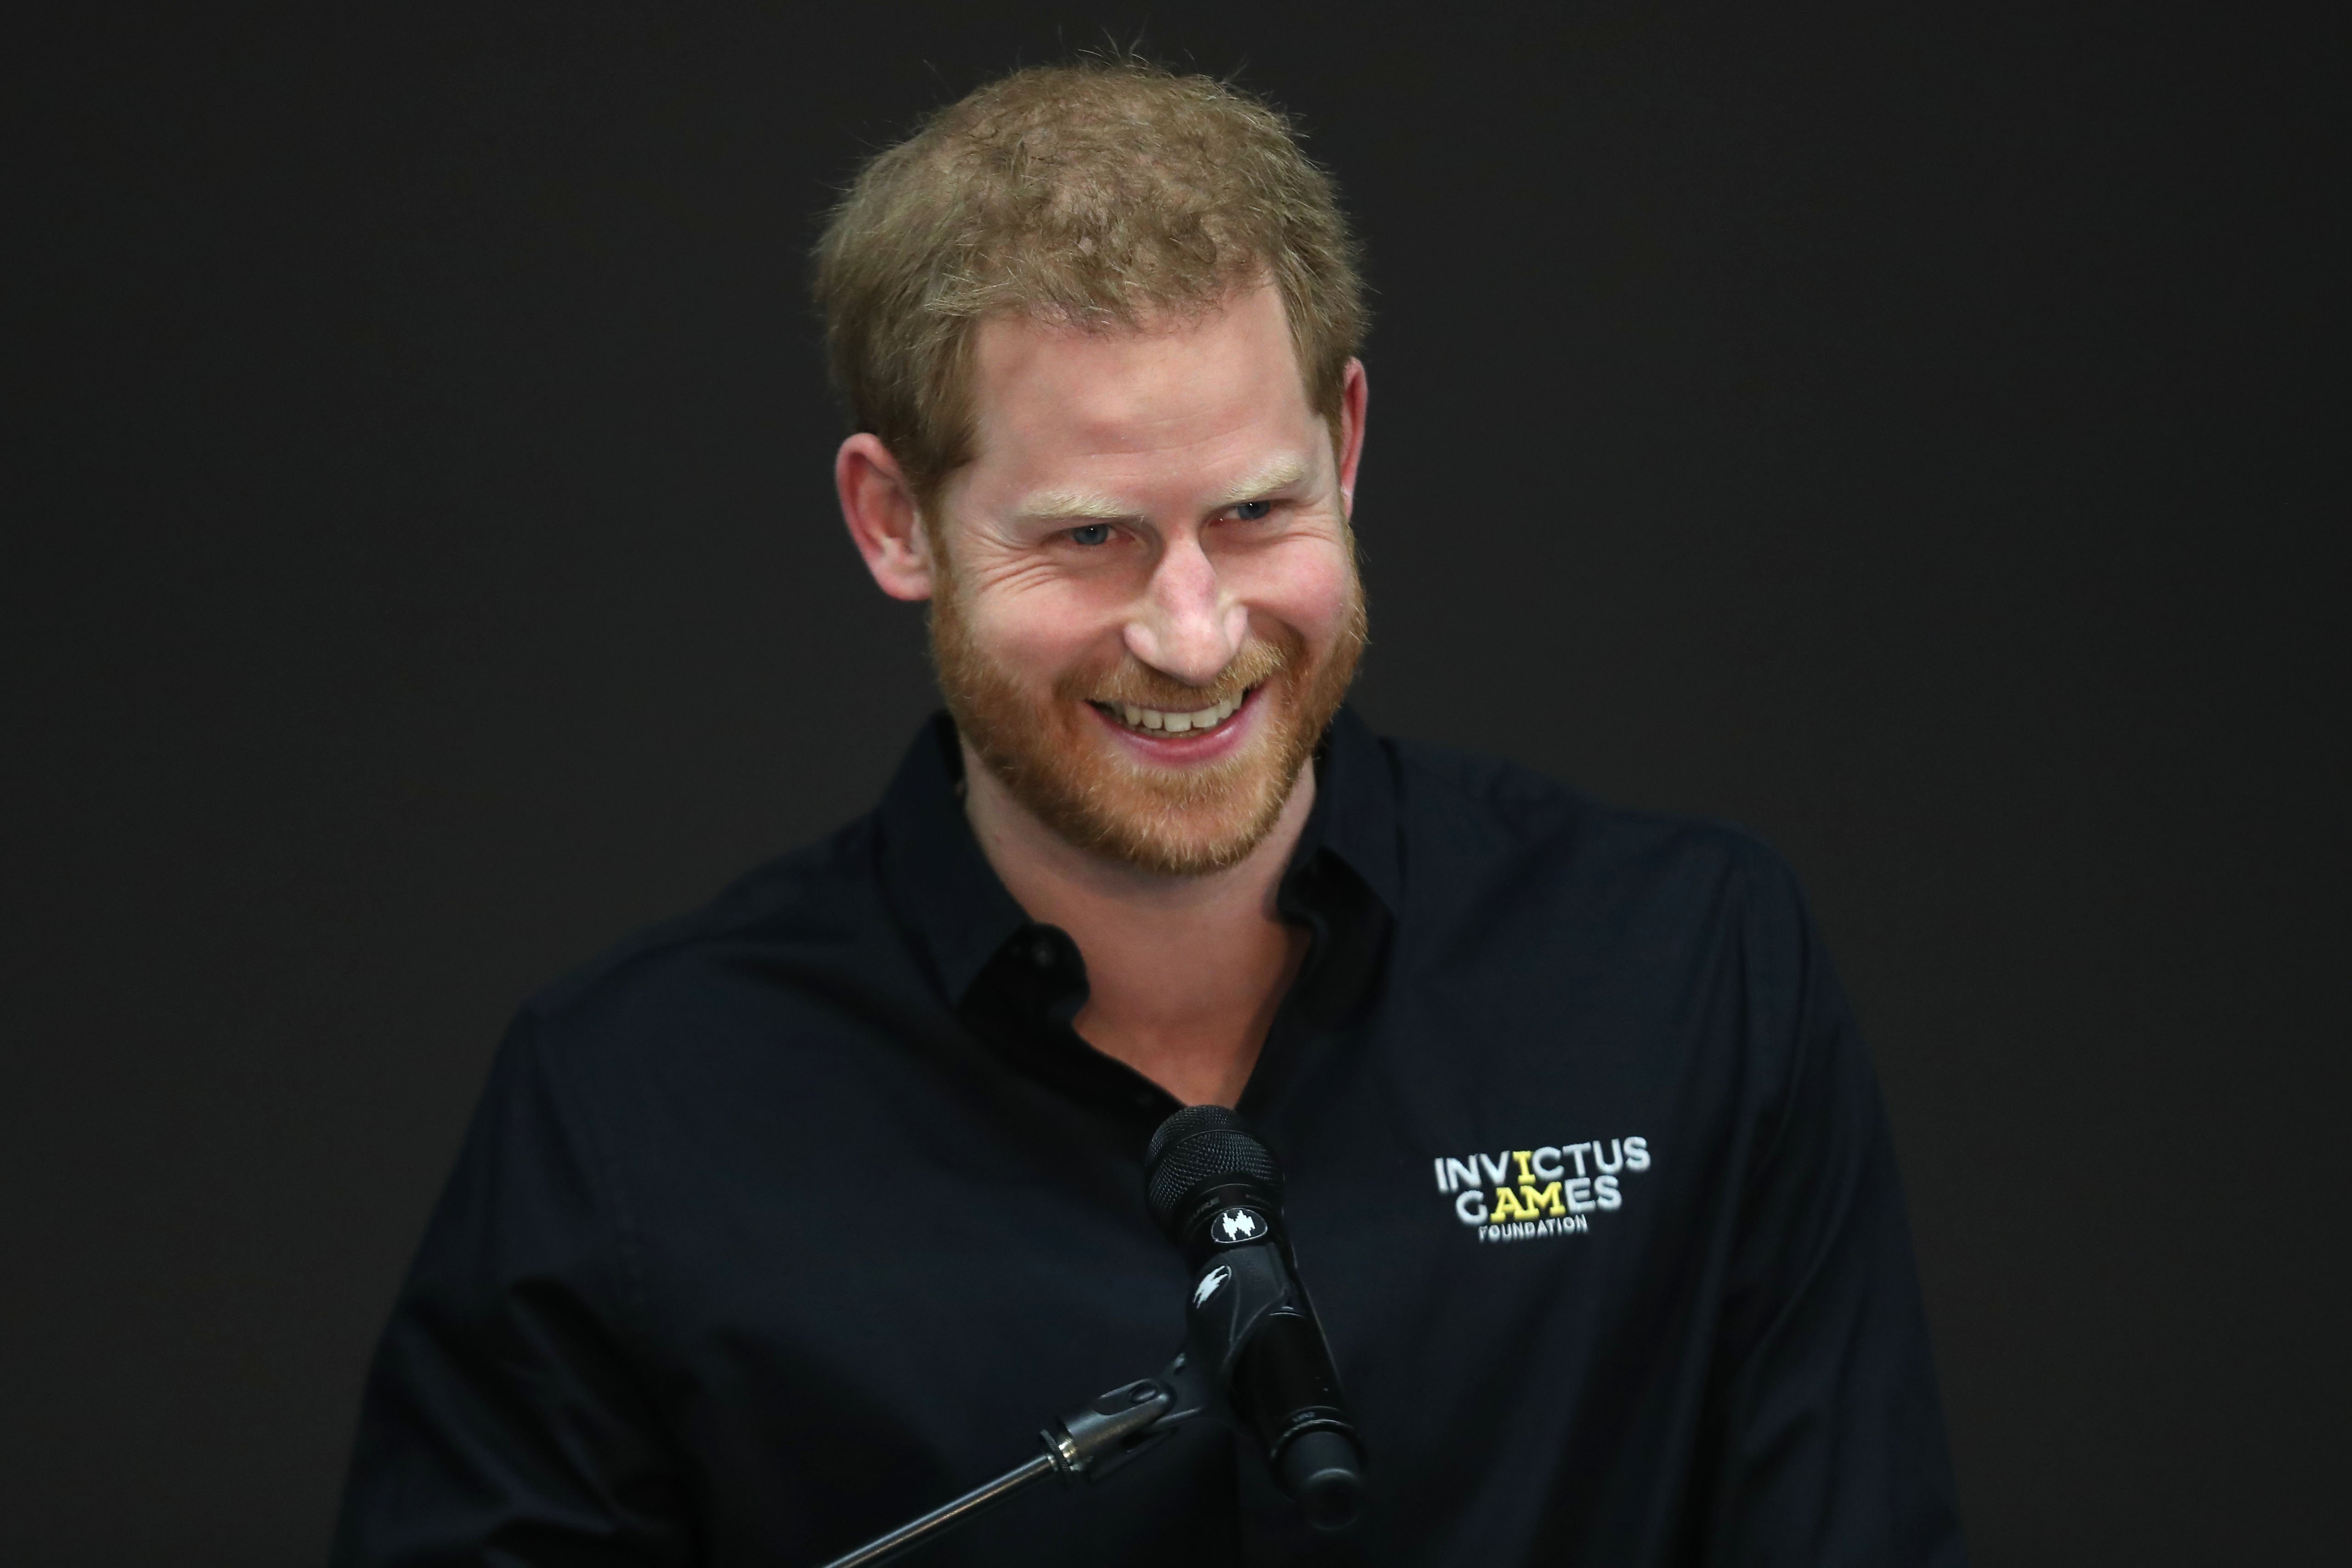 Image Credits: Getty Images | Prince Harry speaks at the Invictus Games.